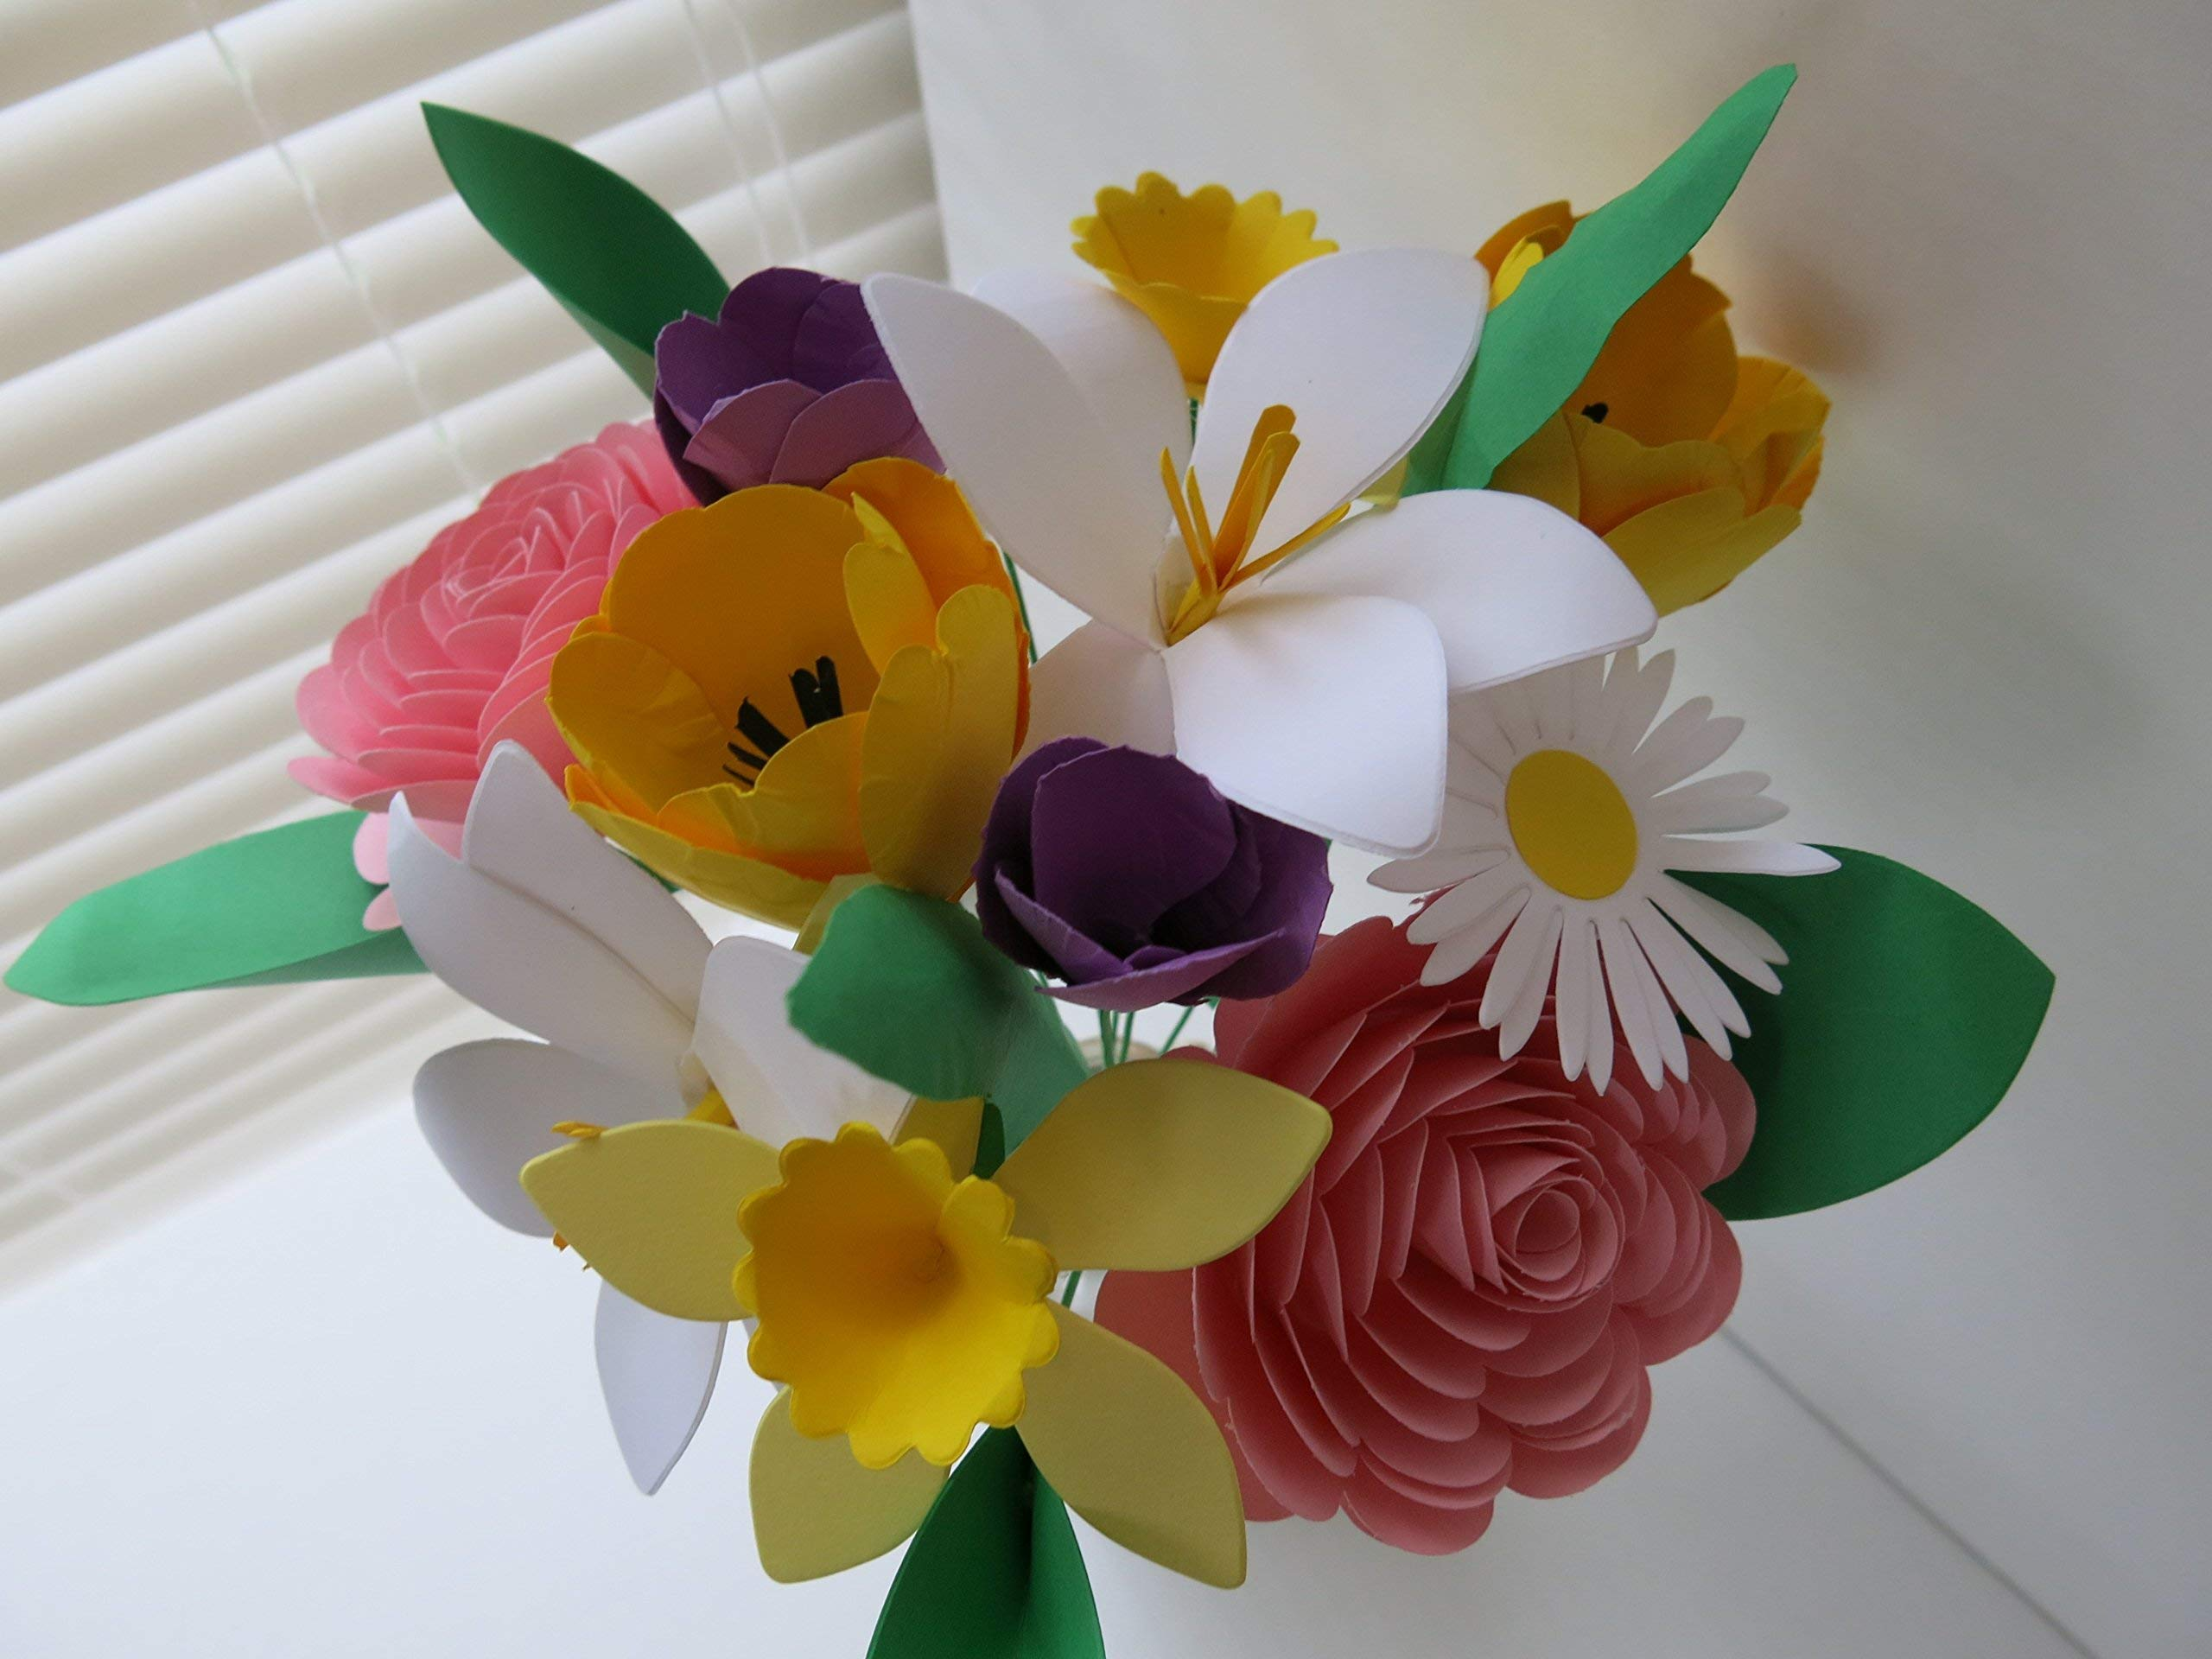 Mother's Day Bouquet, Spring Paper Flower Mix on Stems, Daffodil, Easter Lily, Crocus, Daisy, Rose, Tulip, Floral Arrangement